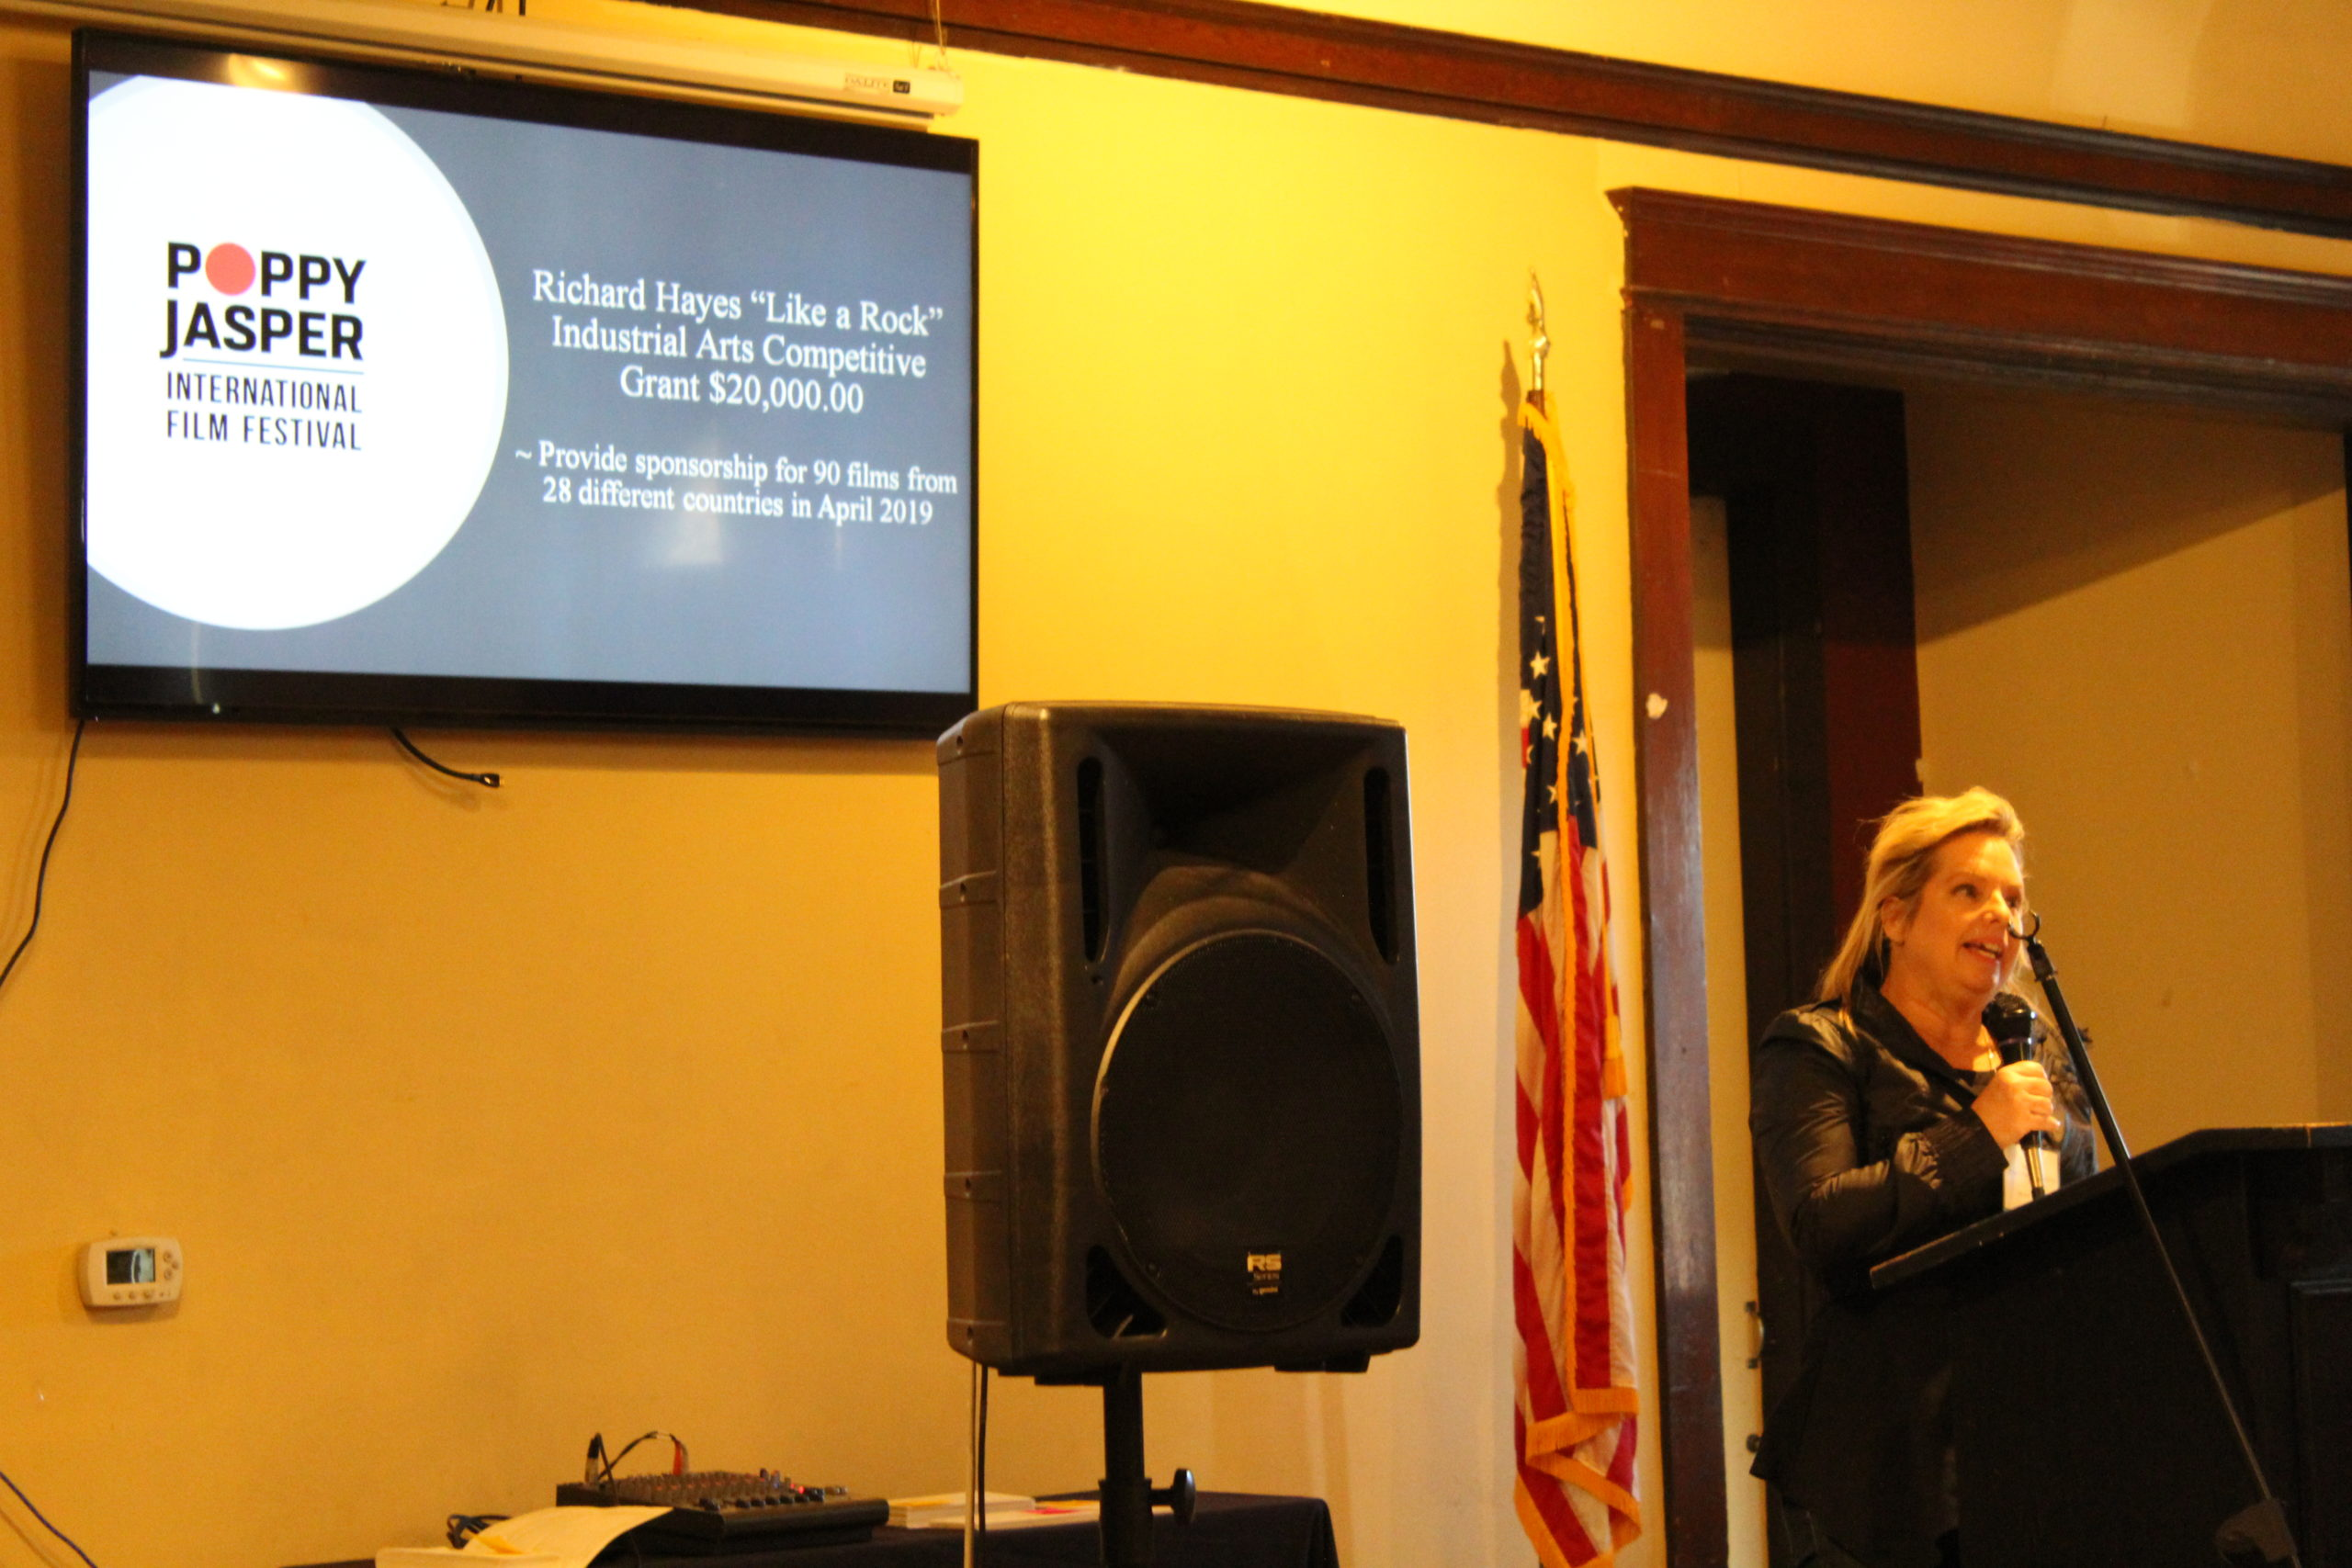 Photo of Mattie Scarriot, Executive Director or Poppy Jasper International Film Festival speaking into a microphone